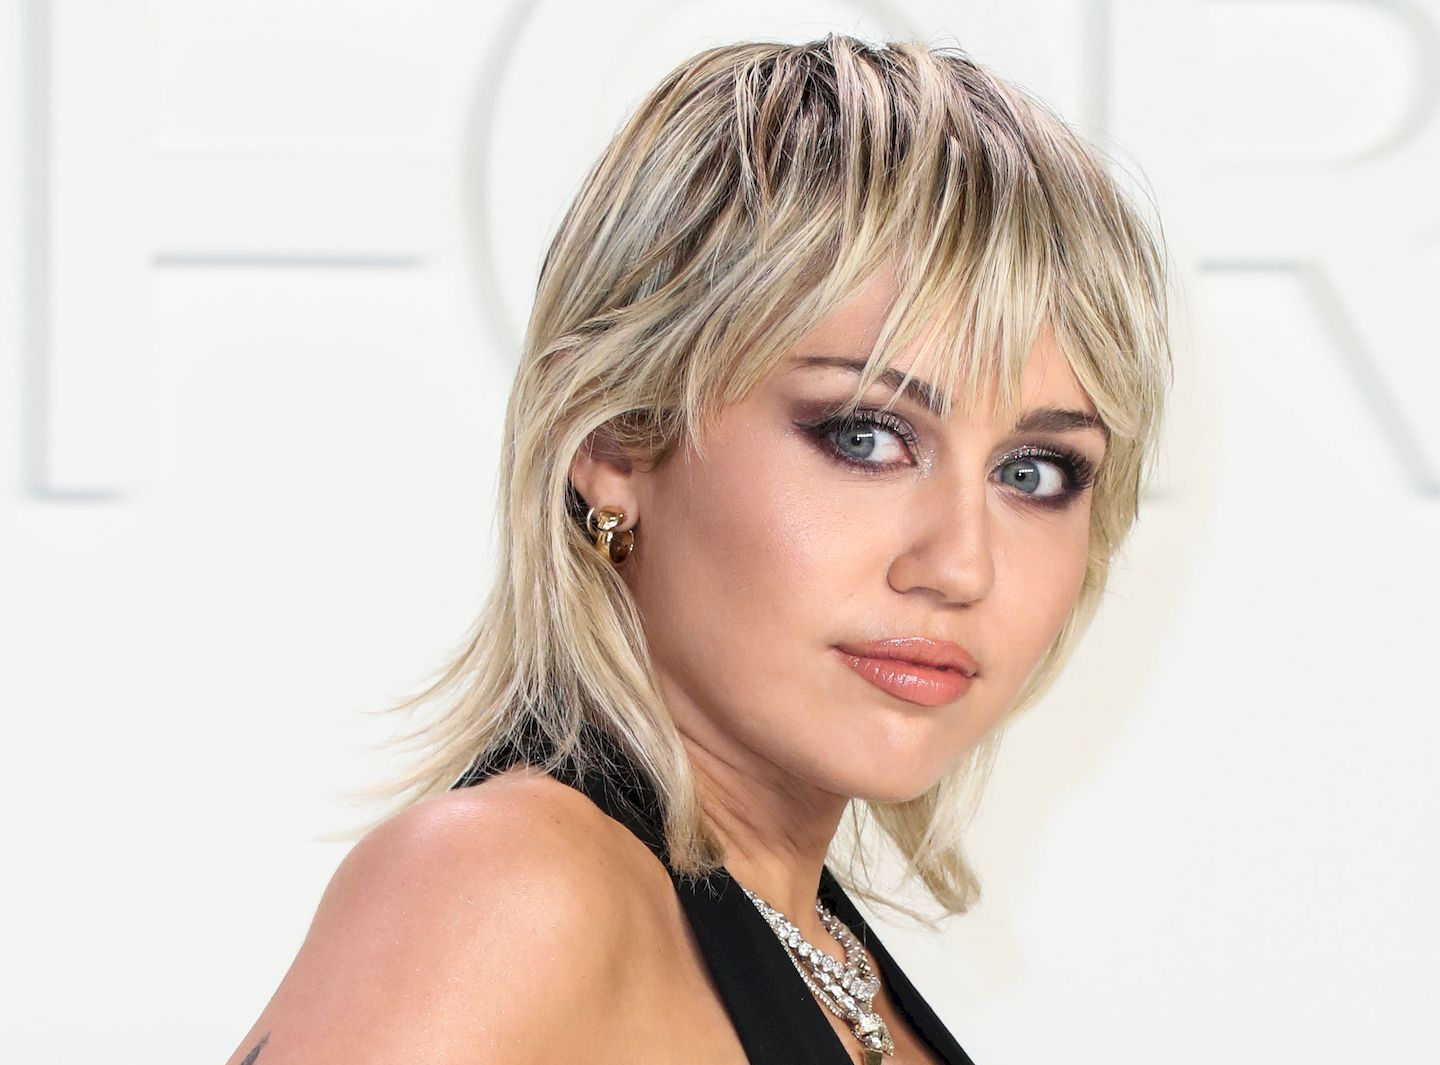 Miley Cyrus Looks Sexy At The Tom Ford Autumn Winter 2020 Fashion Show 0001